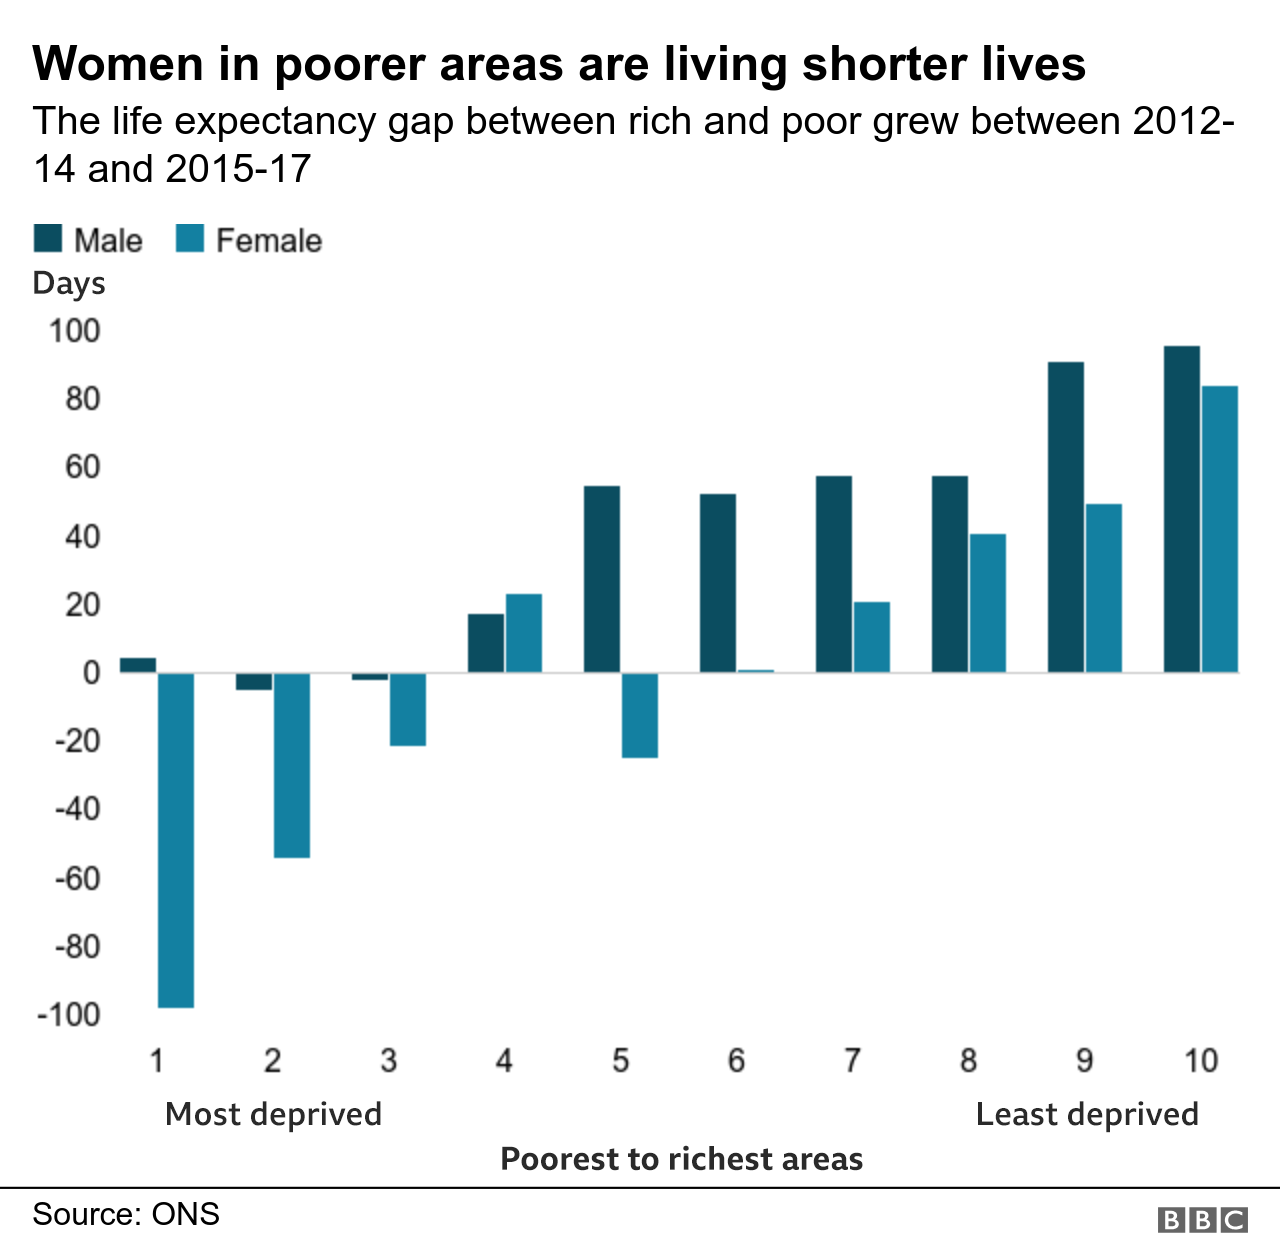 Women in poorer areas are living shorter lives